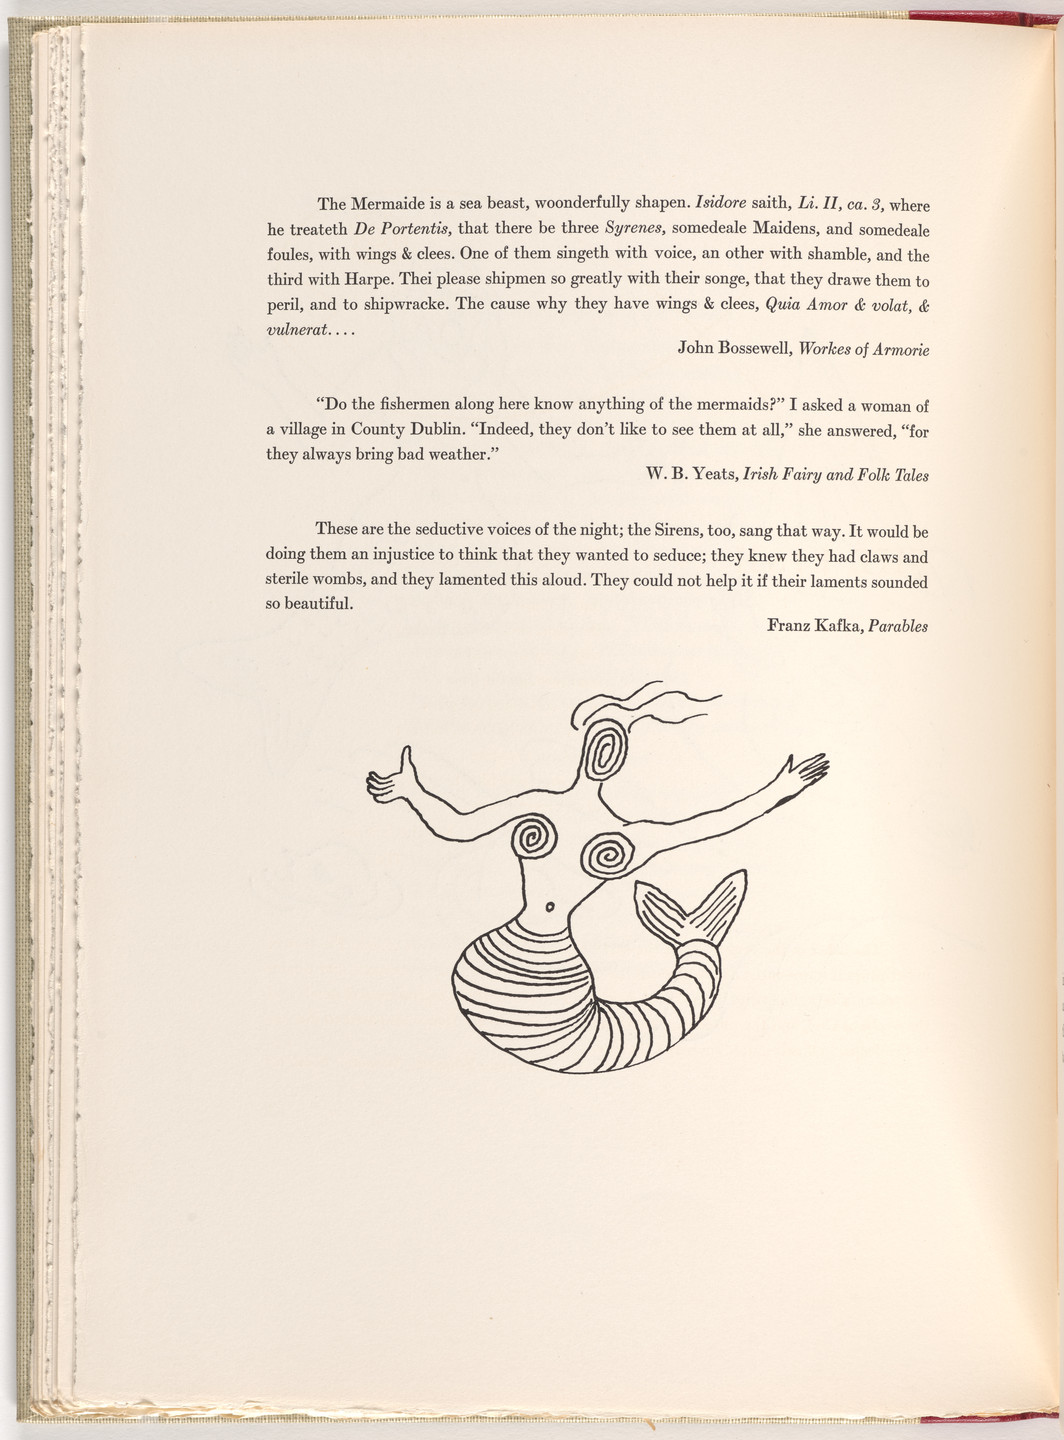 Alexander Calder. Tailpiece (page 26) from A Bestiary. 1955